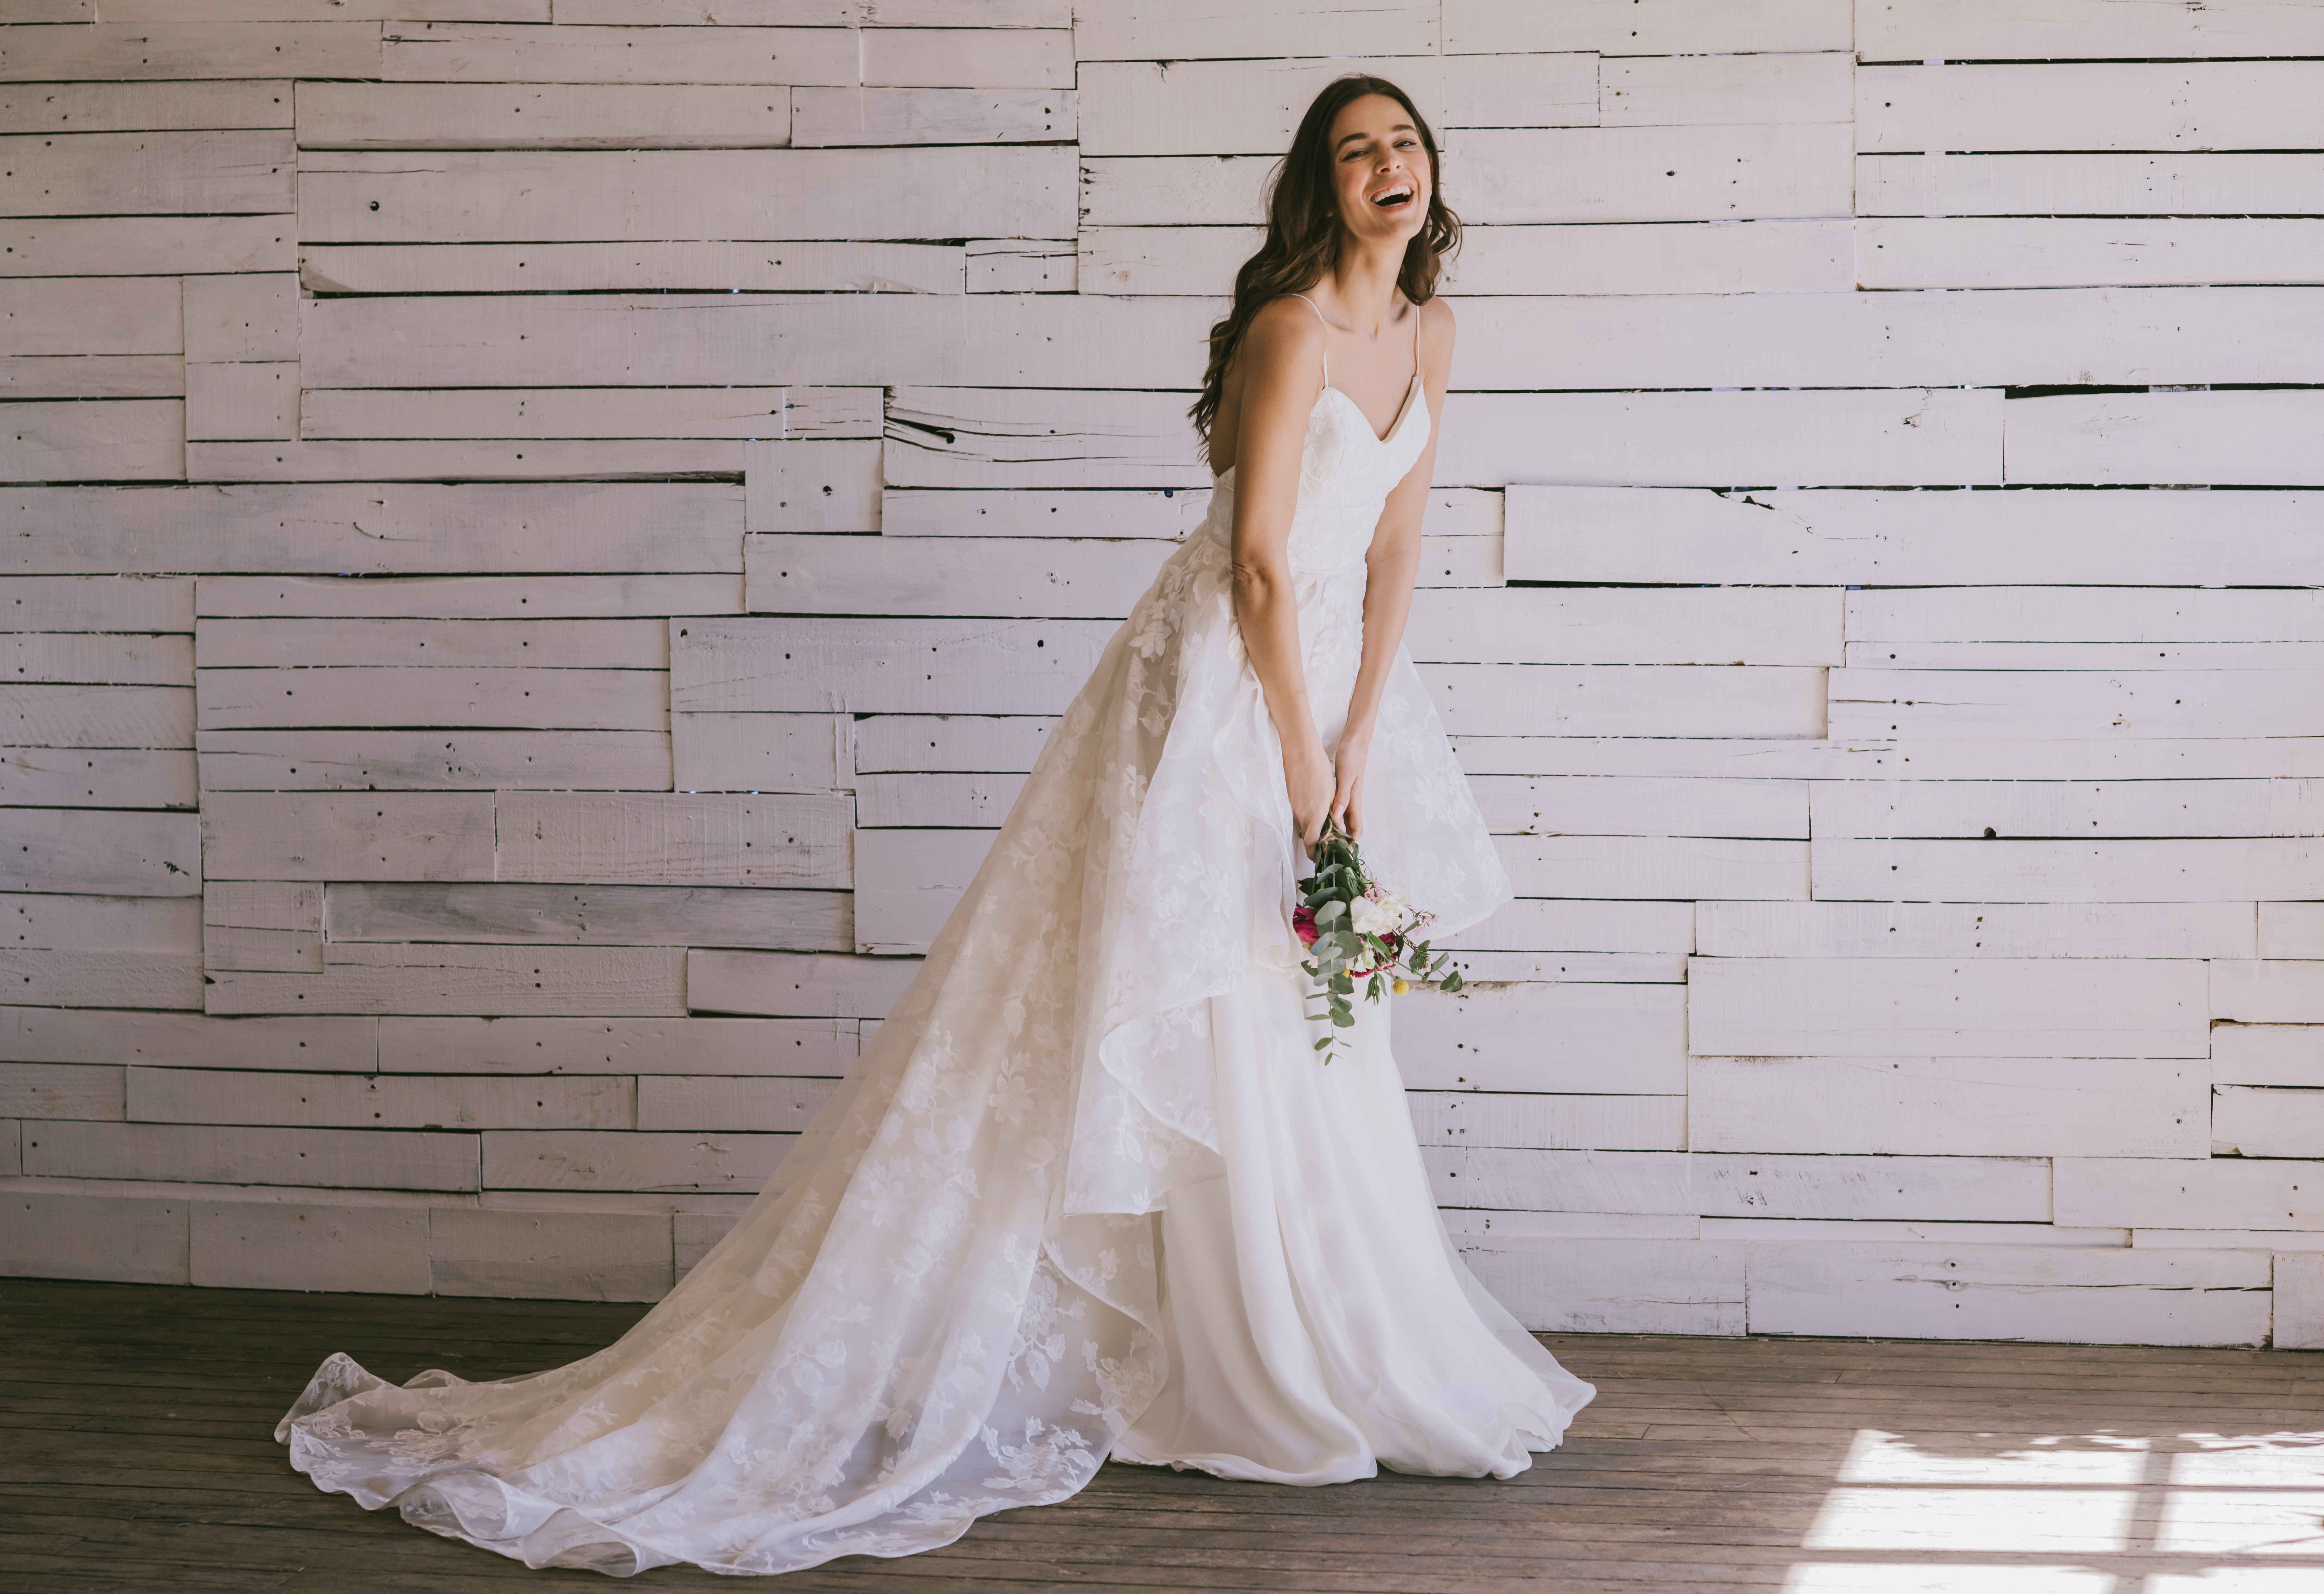 Wedding dress bridal gown boutique raleigh north carolina • Gilded ...